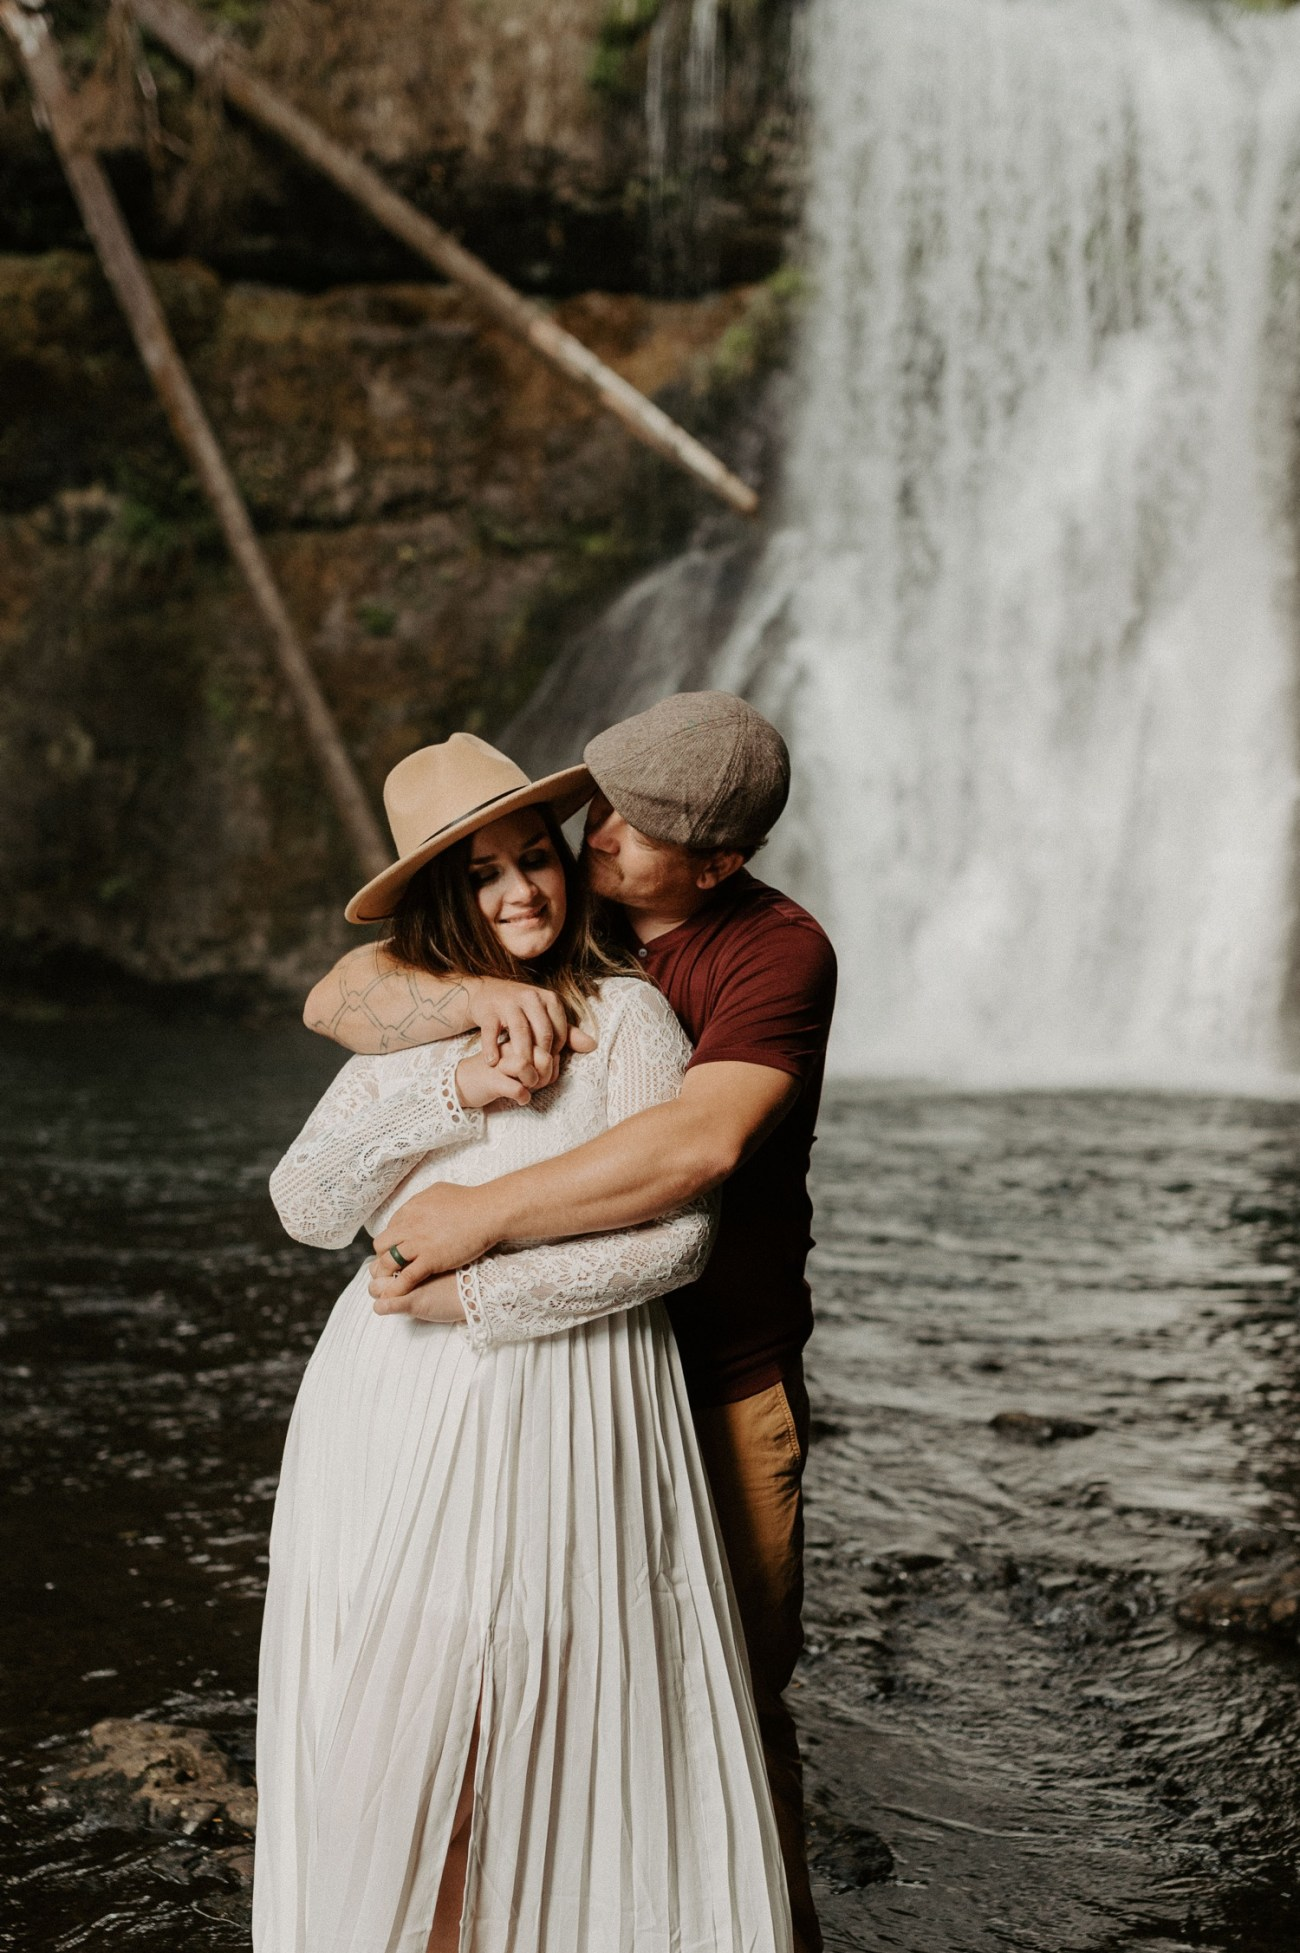 Silver Falls State Park Engagement Session North Falls Engagement Photos Portland Wedding Photographer Oregon Elopement Photographer Anais Possamai Photography 019